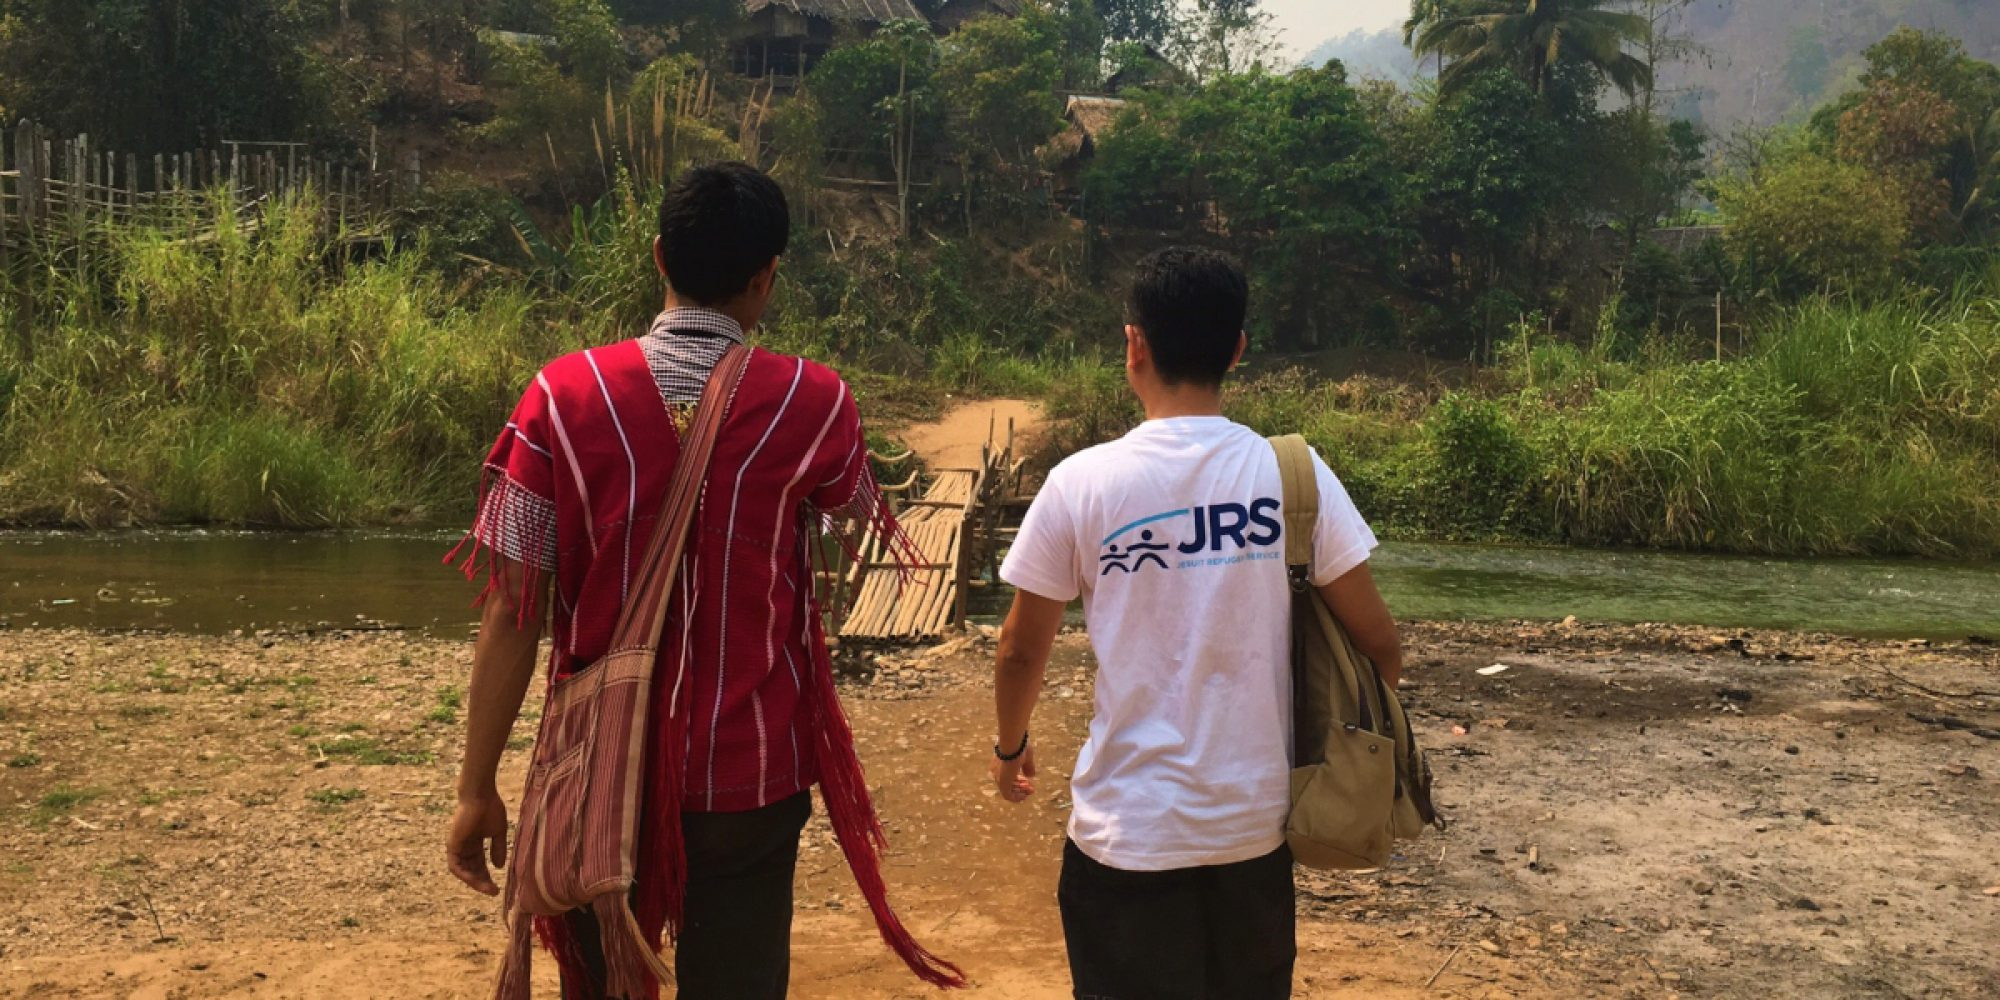 JRS Thailand Staff walk together. (Jesuit Refugee Service)